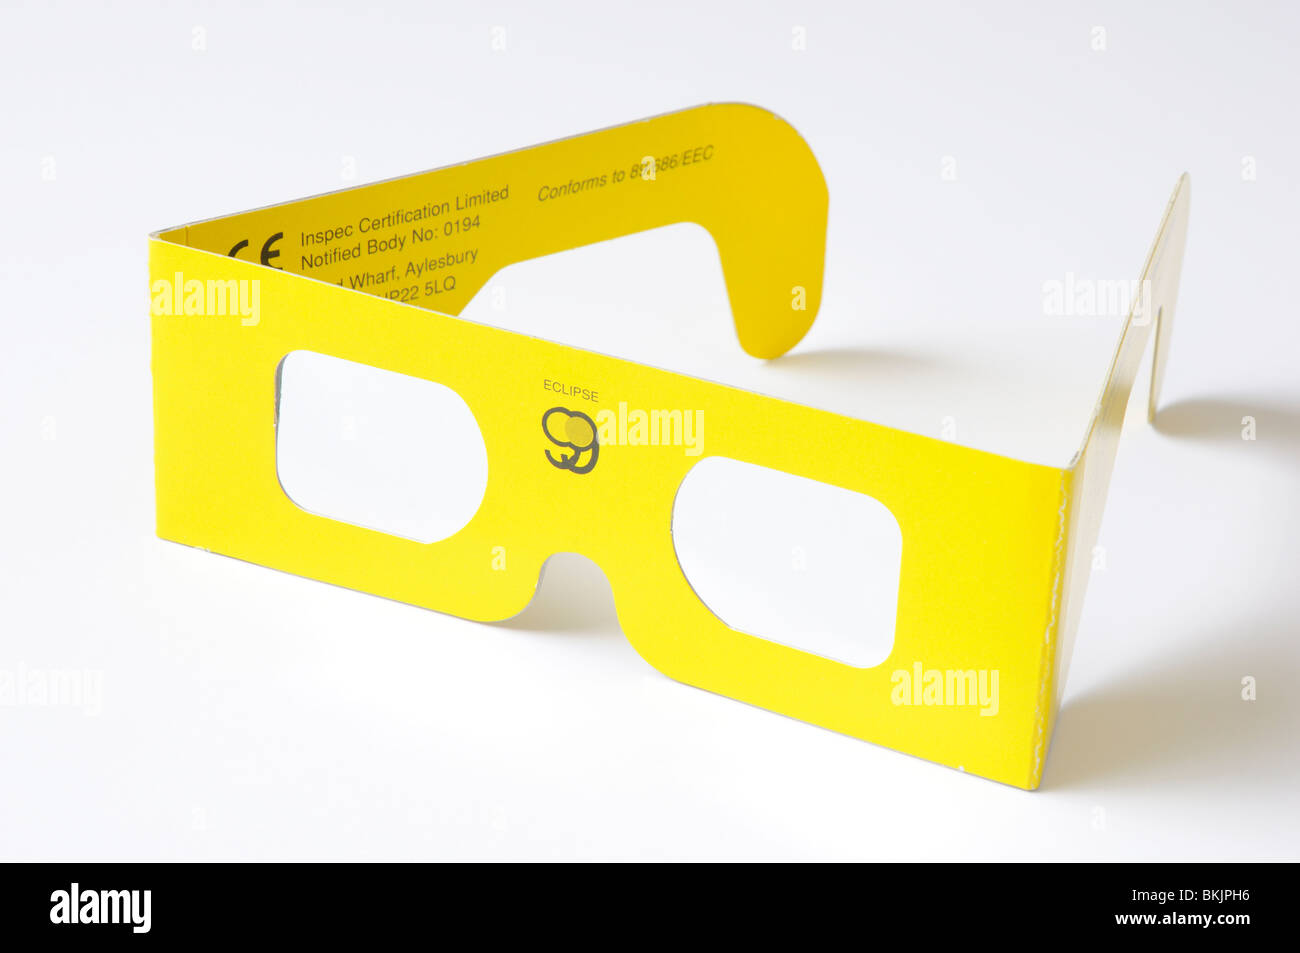 Pair of solar eclipse glasses - Stock Image